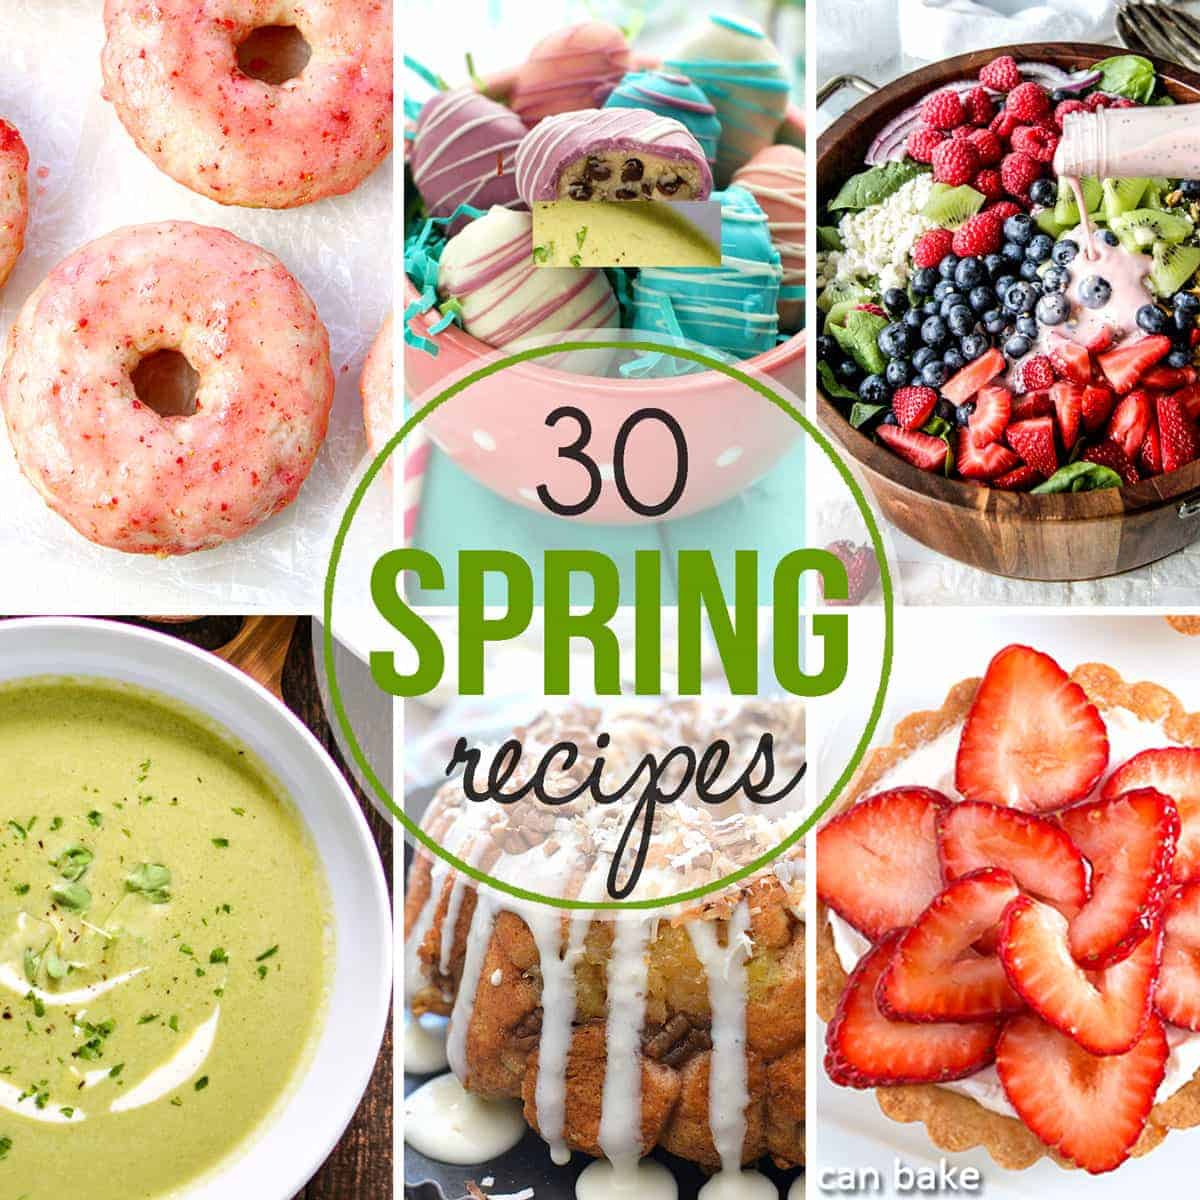 These 30 Spring recipesfrom lunches to dinners, desserts and more will have you jumping for joy and enjoying the flavors of the season!